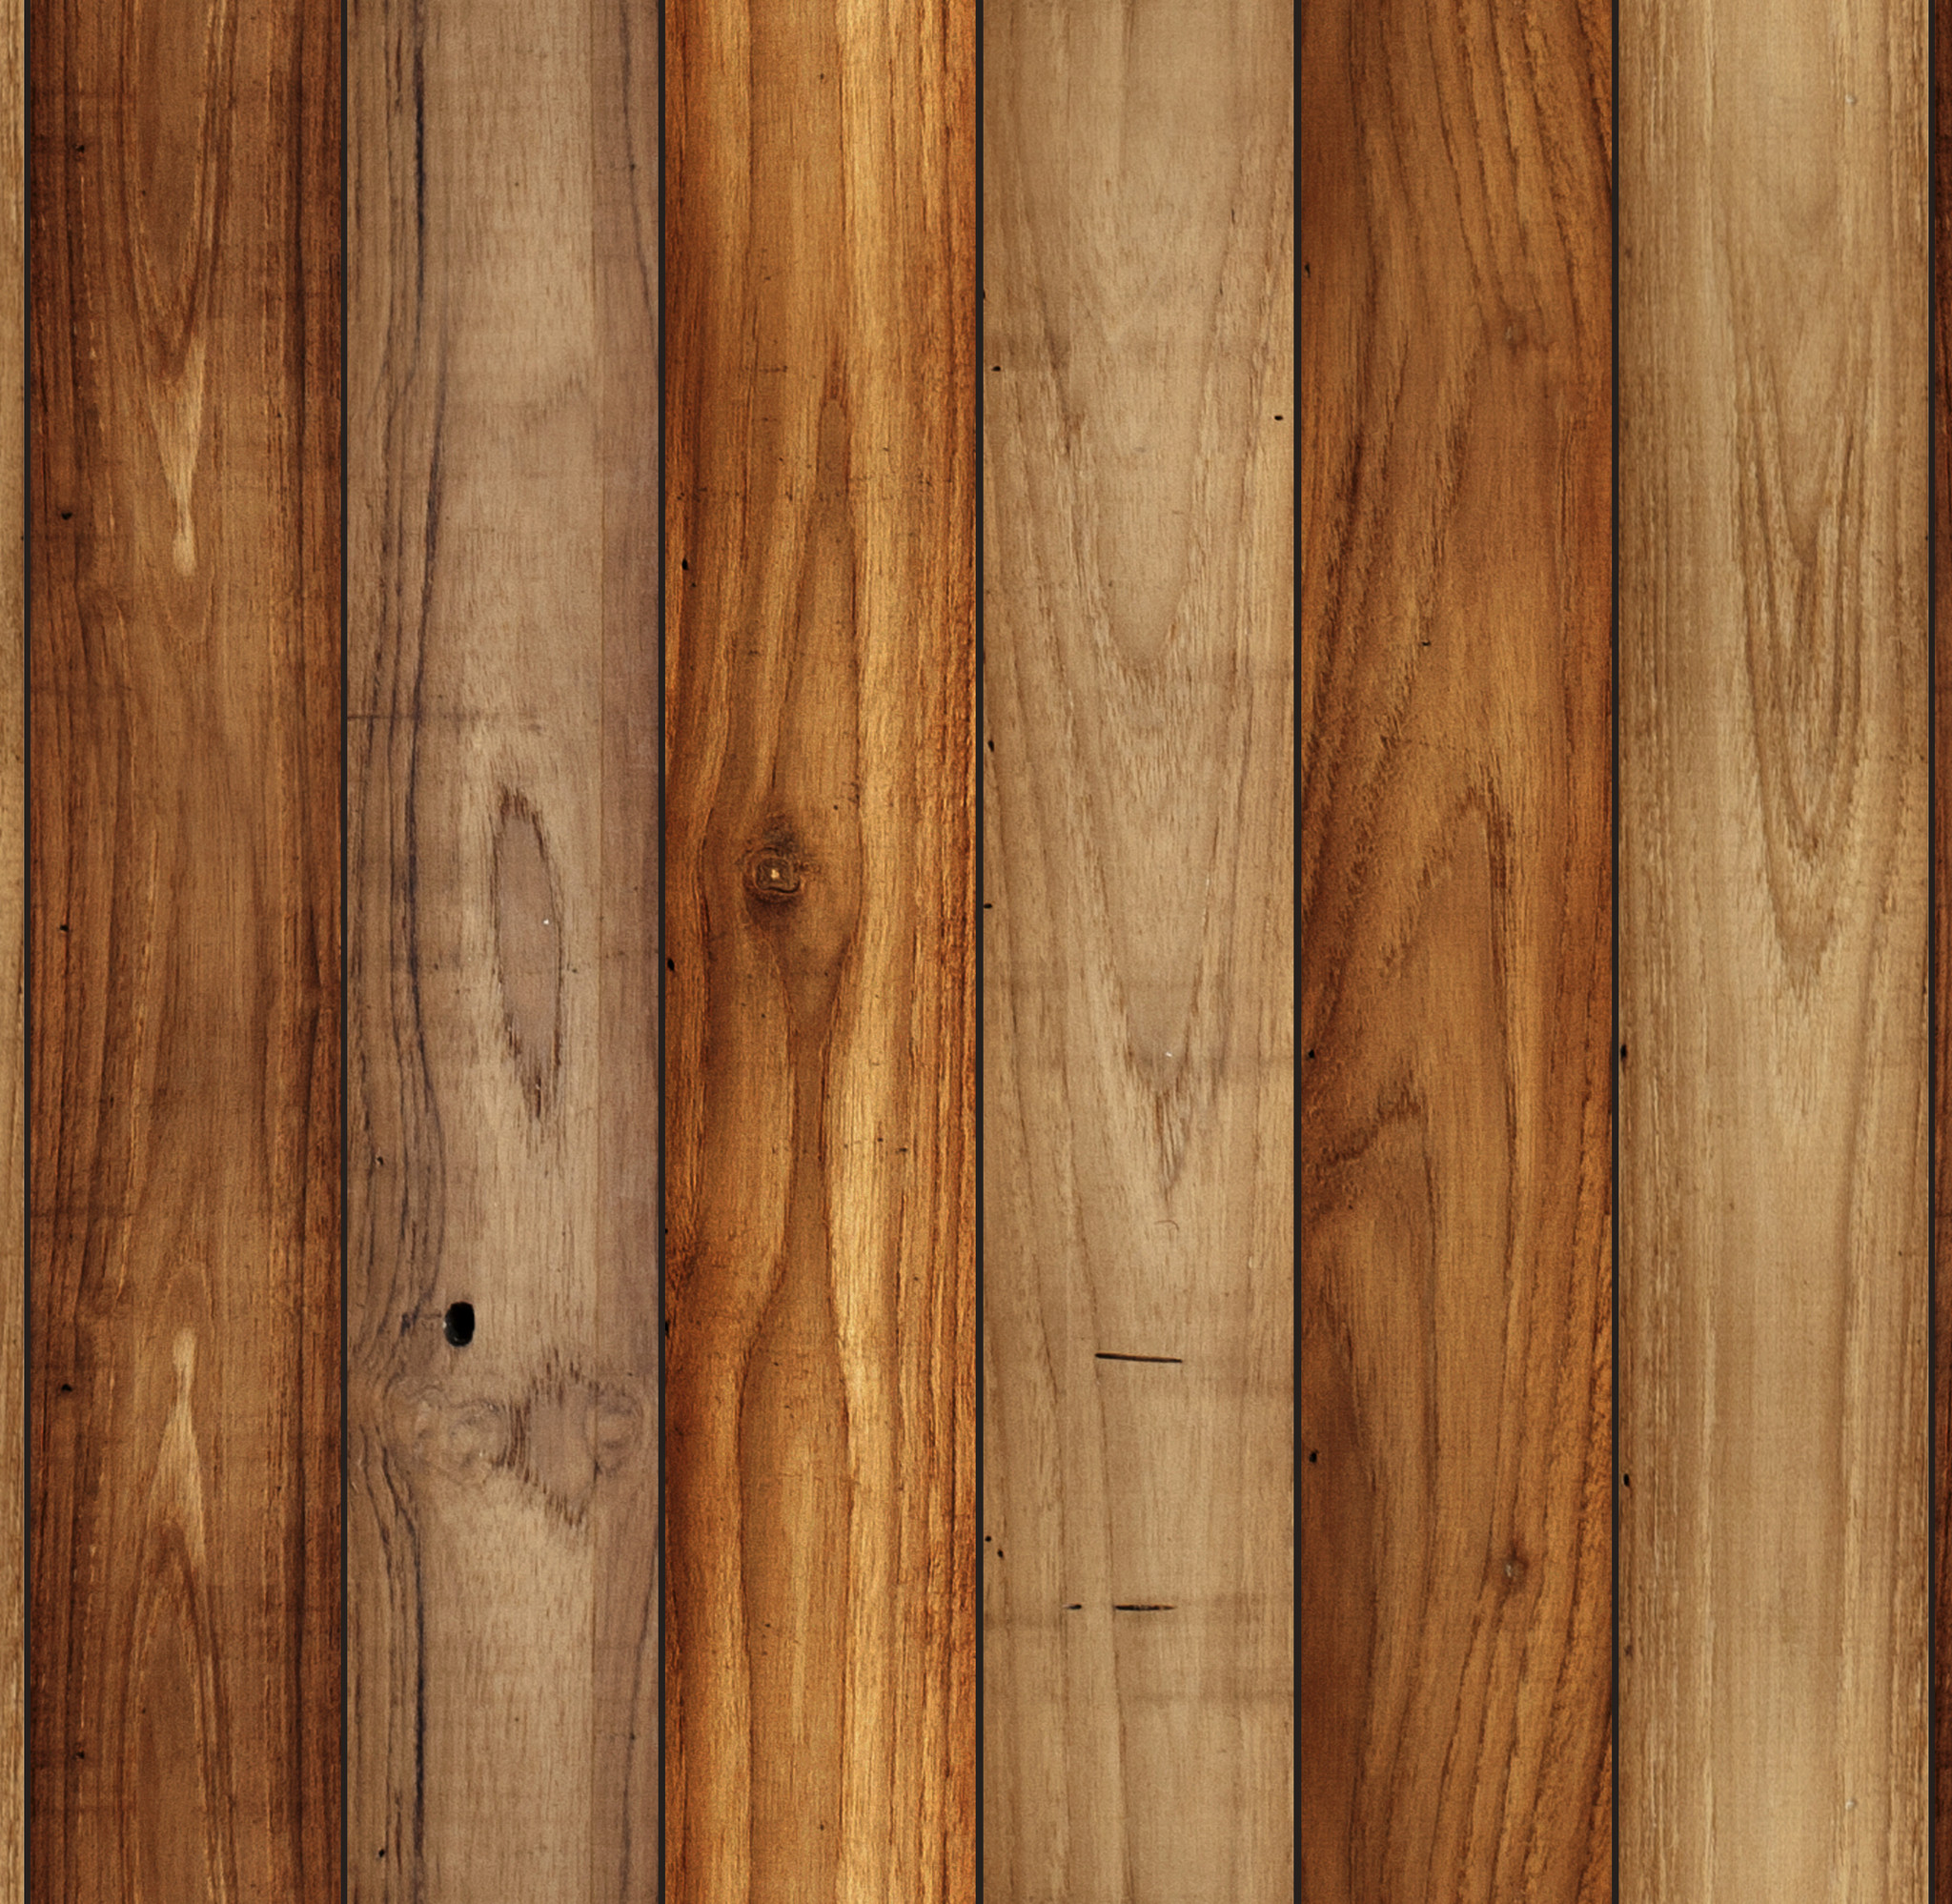 Wallpaper Wood Panel